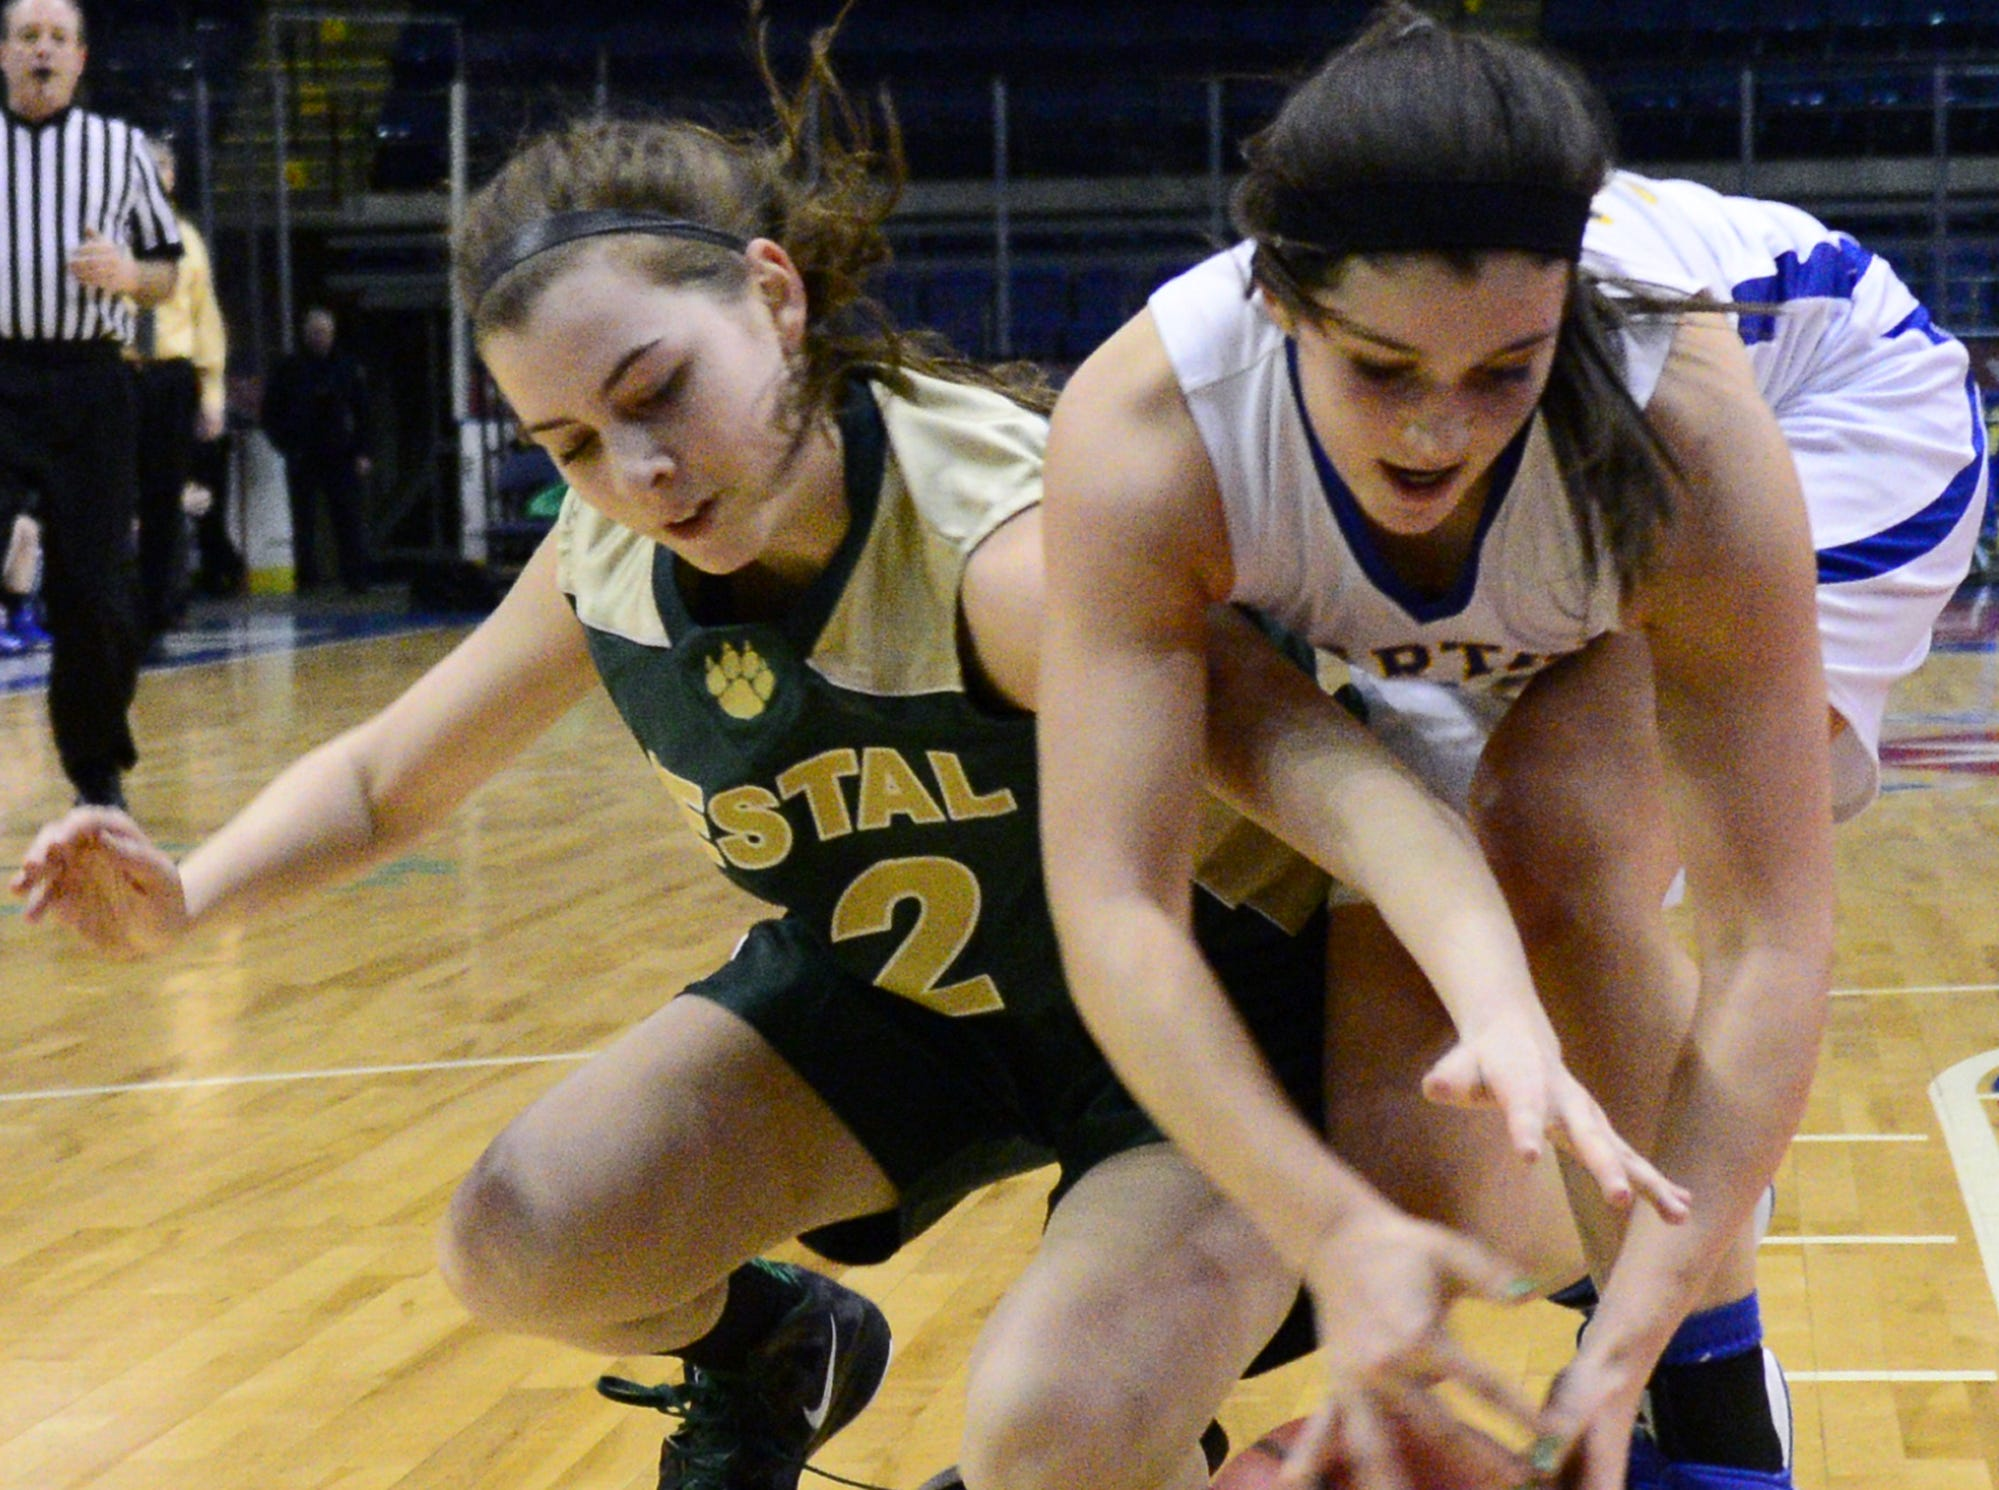 2013: Maine-Endwell's Daniella Dean and Vestal's Molly Liss battle for possession during Friday's Section 4 Class A championship game at the Broome County Veterans Memorial Arena.